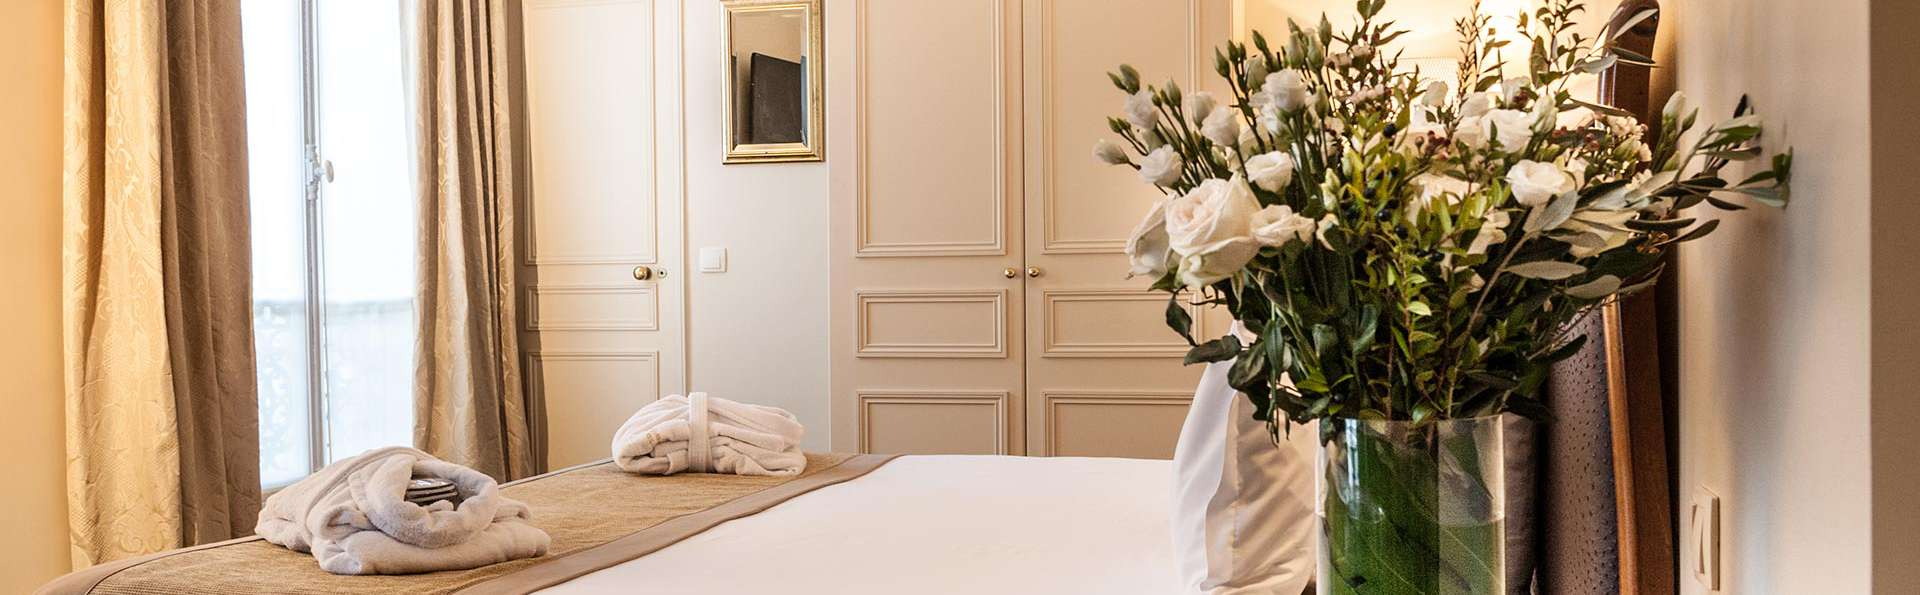 Saint James Albany Paris Hotel Spa - EDIT_NEW_ROOM_01.jpg